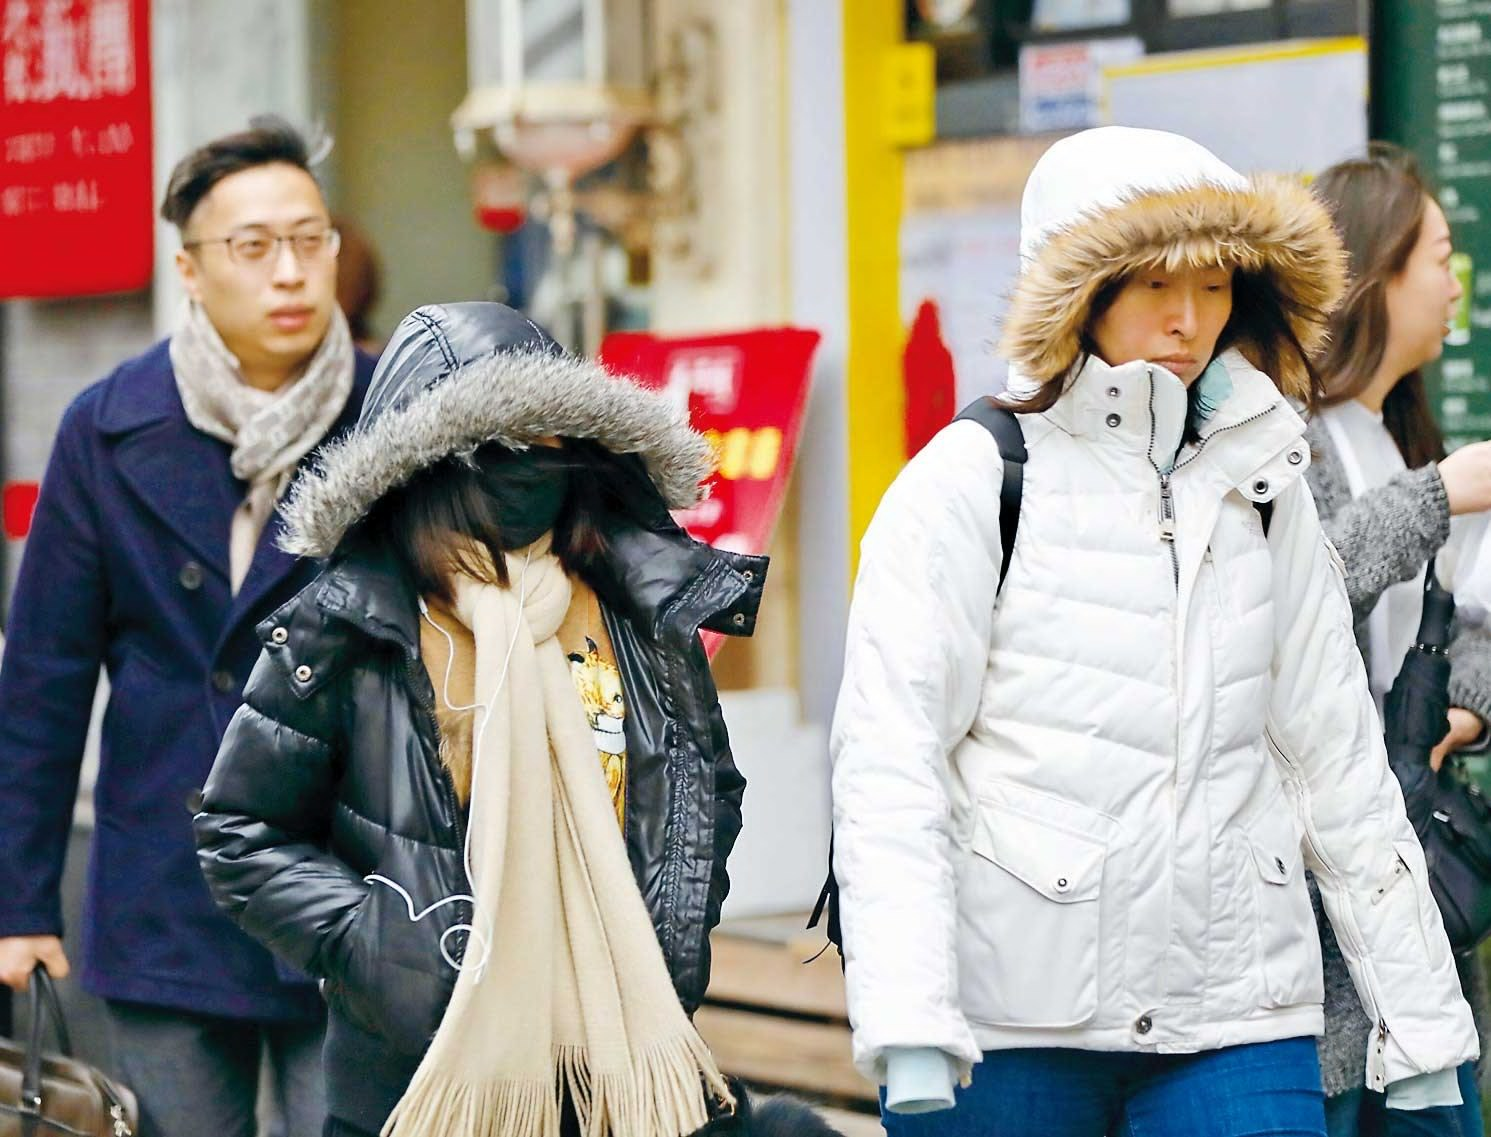 Cold wave to hit city as temperature set to drop